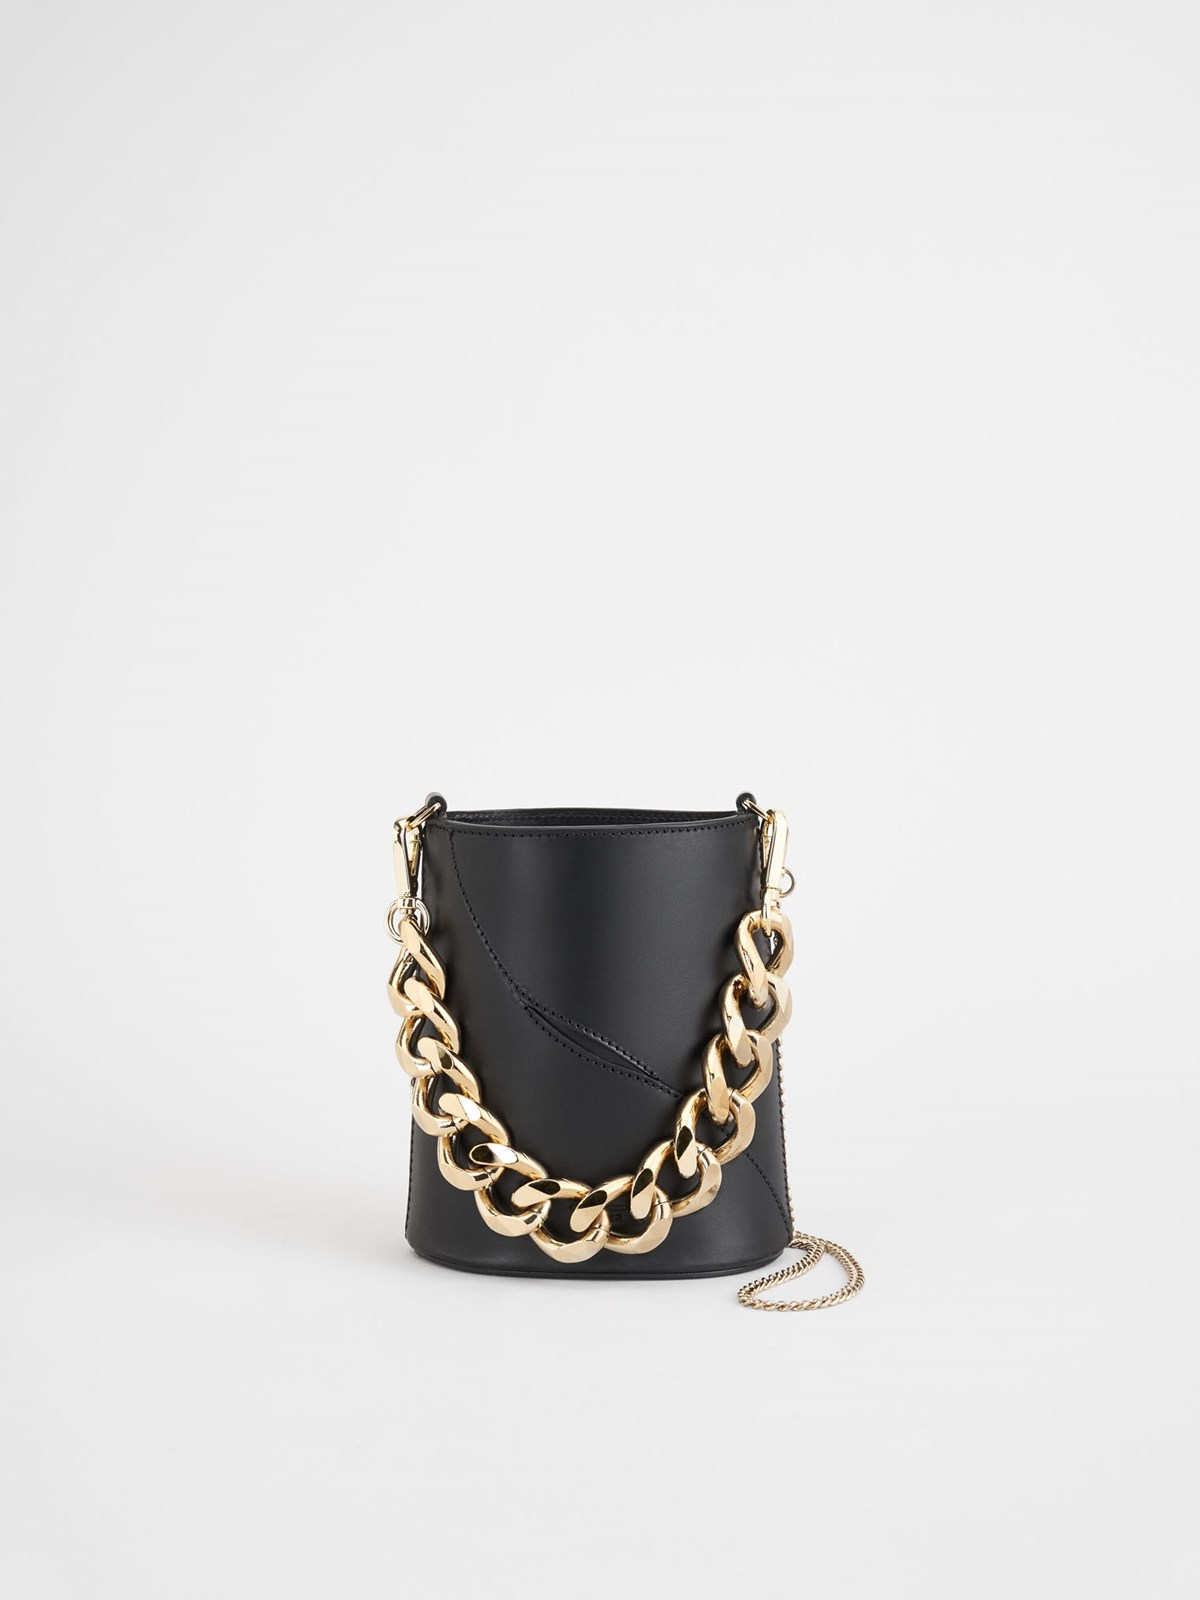 Faeto Black Bucket Bag